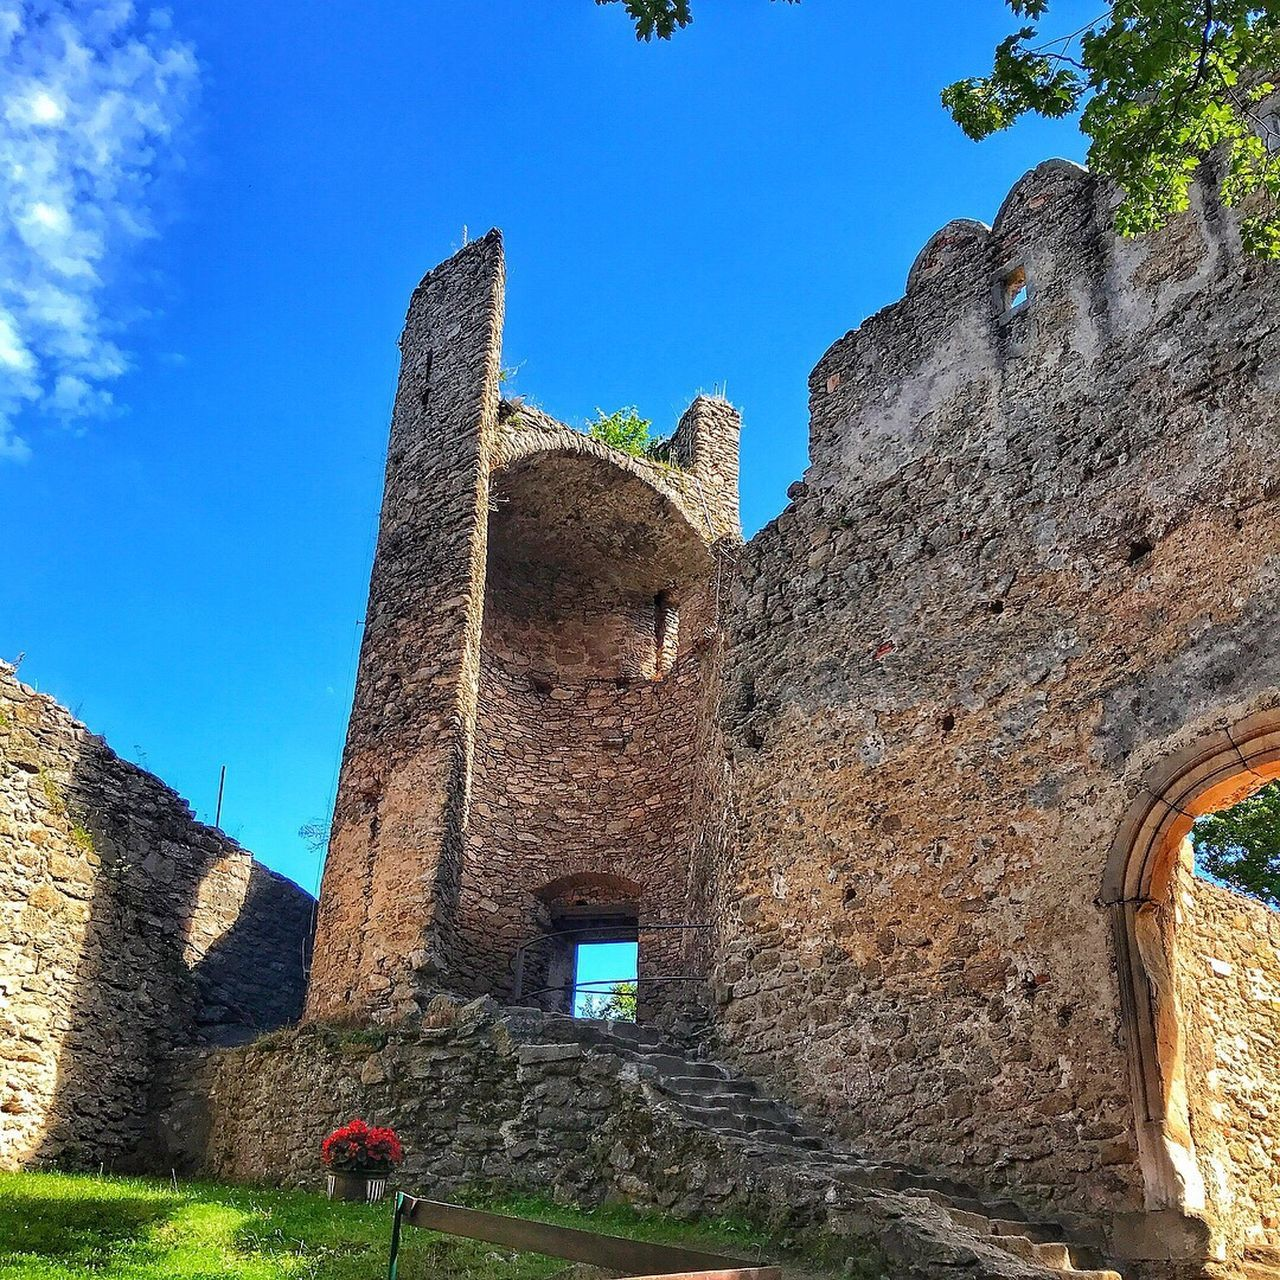 architecture, history, built structure, the past, building exterior, day, low angle view, old ruin, ancient, travel destinations, travel, real people, outdoors, ancient civilization, castle, men, one person, women, clear sky, sky, nature, people